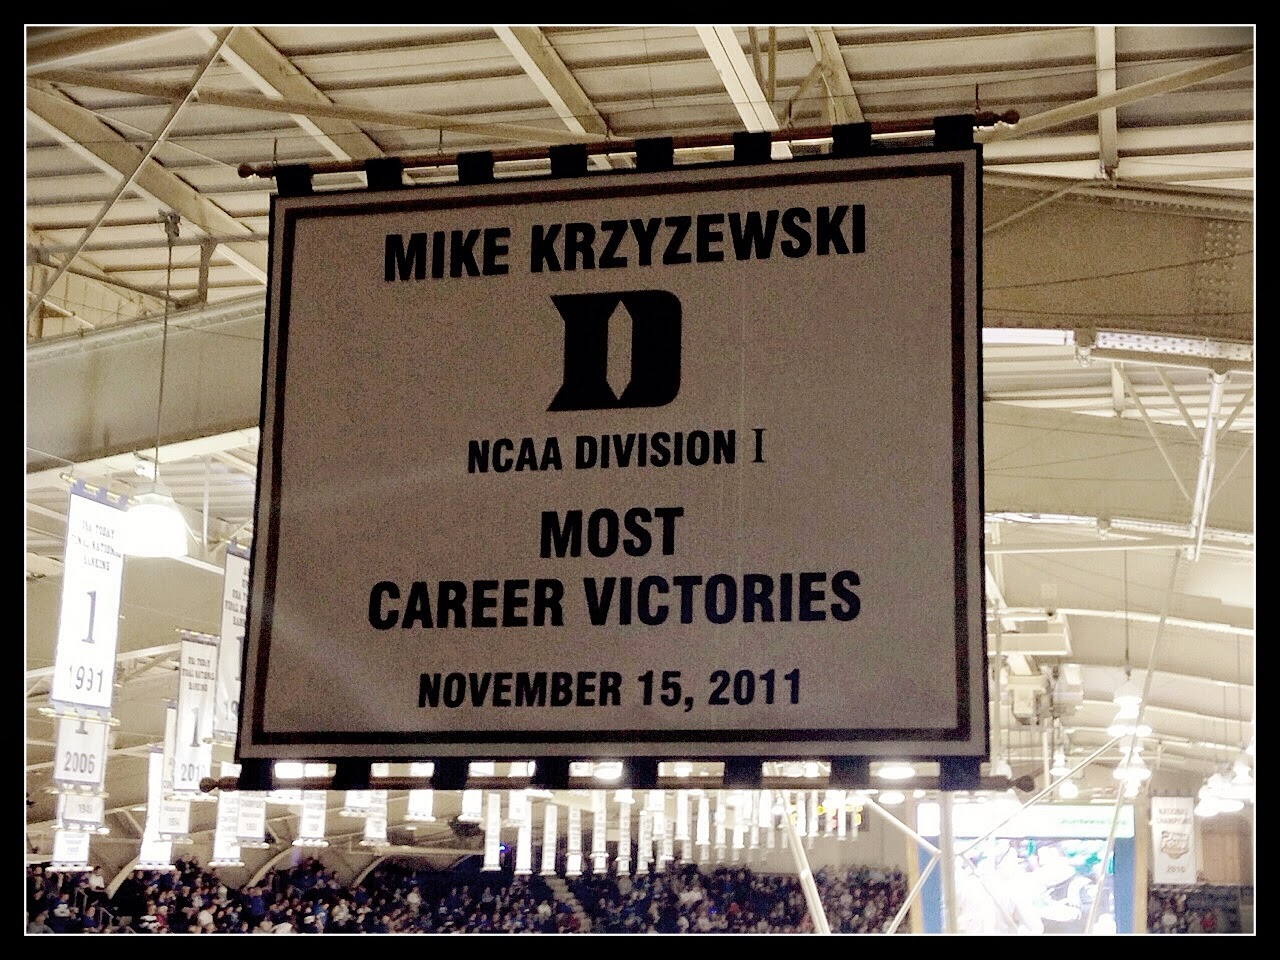 Coach K has the most wins of any coach in college basketball